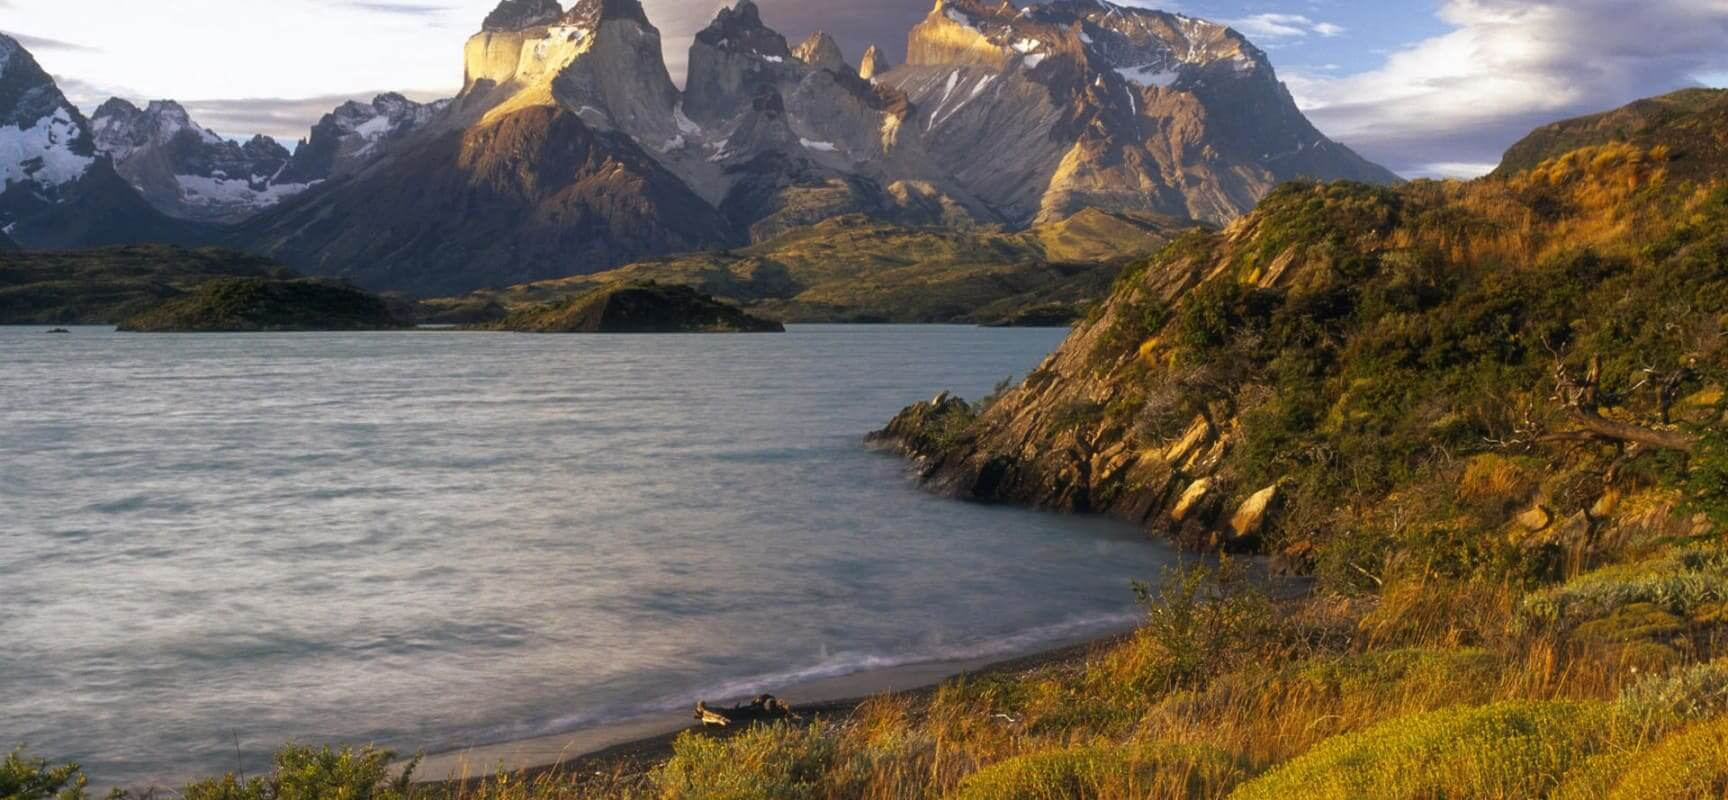 Chile, Patagonia, Torres del Paine NP, Lenticular clouds at sunset over the Cuernos del Paine from the shore of Lago Pehoe